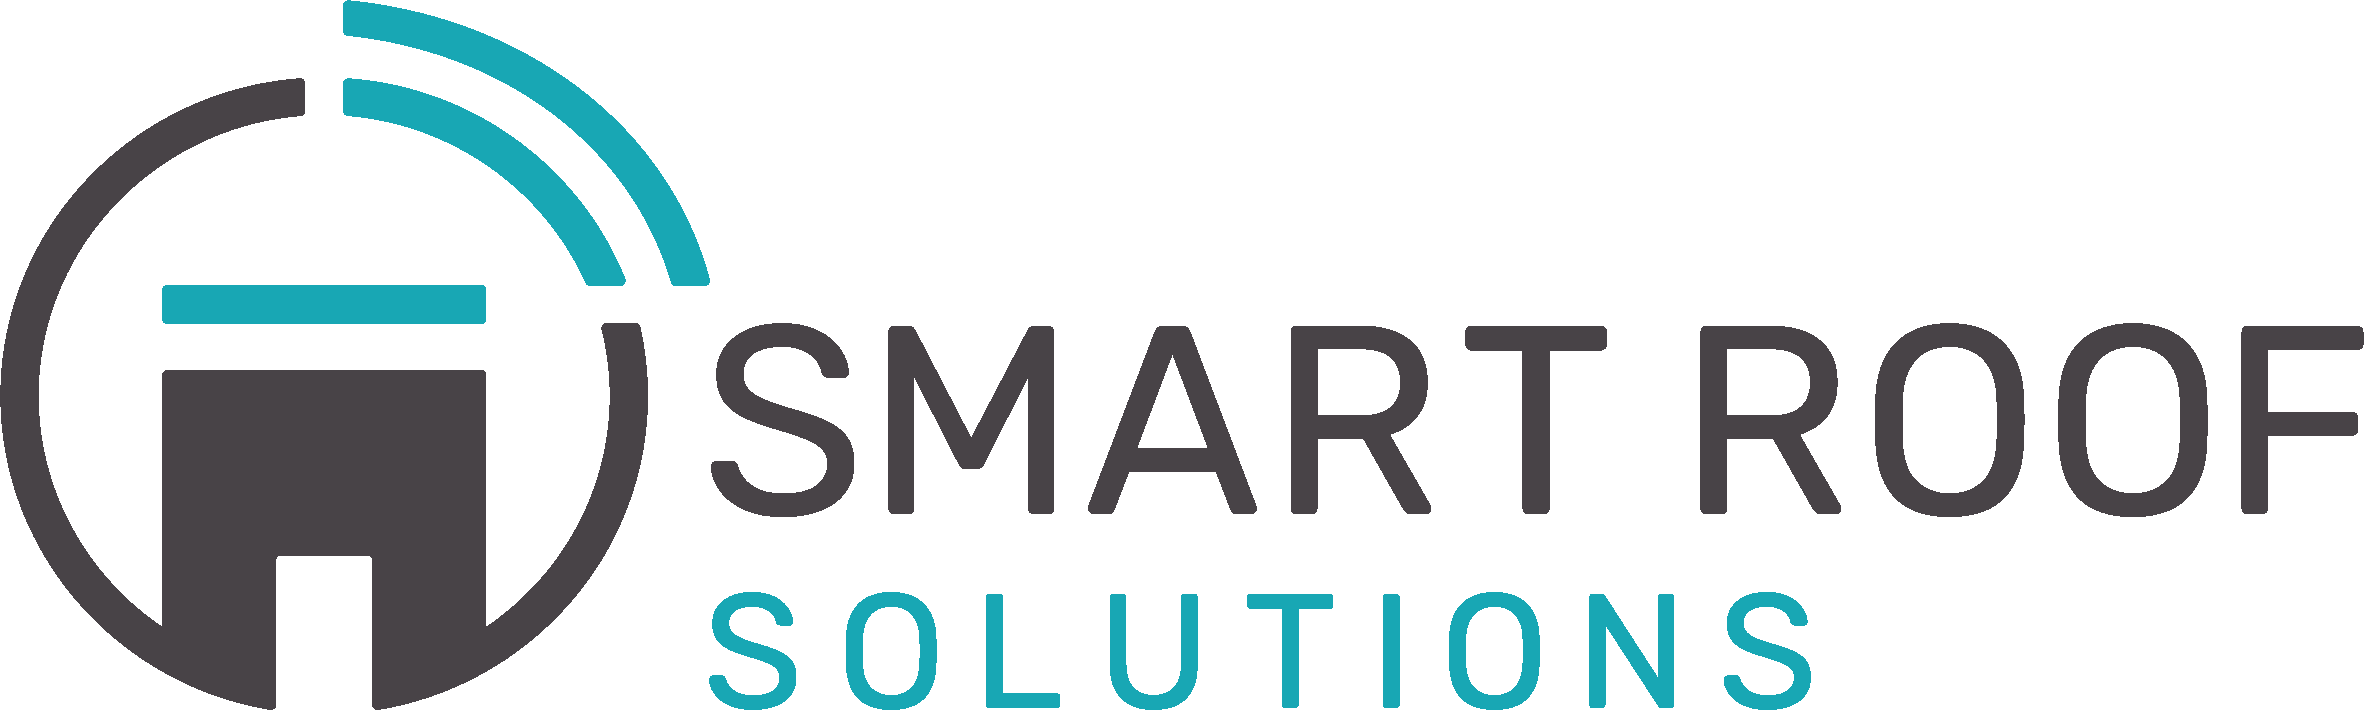 smart roof solutions